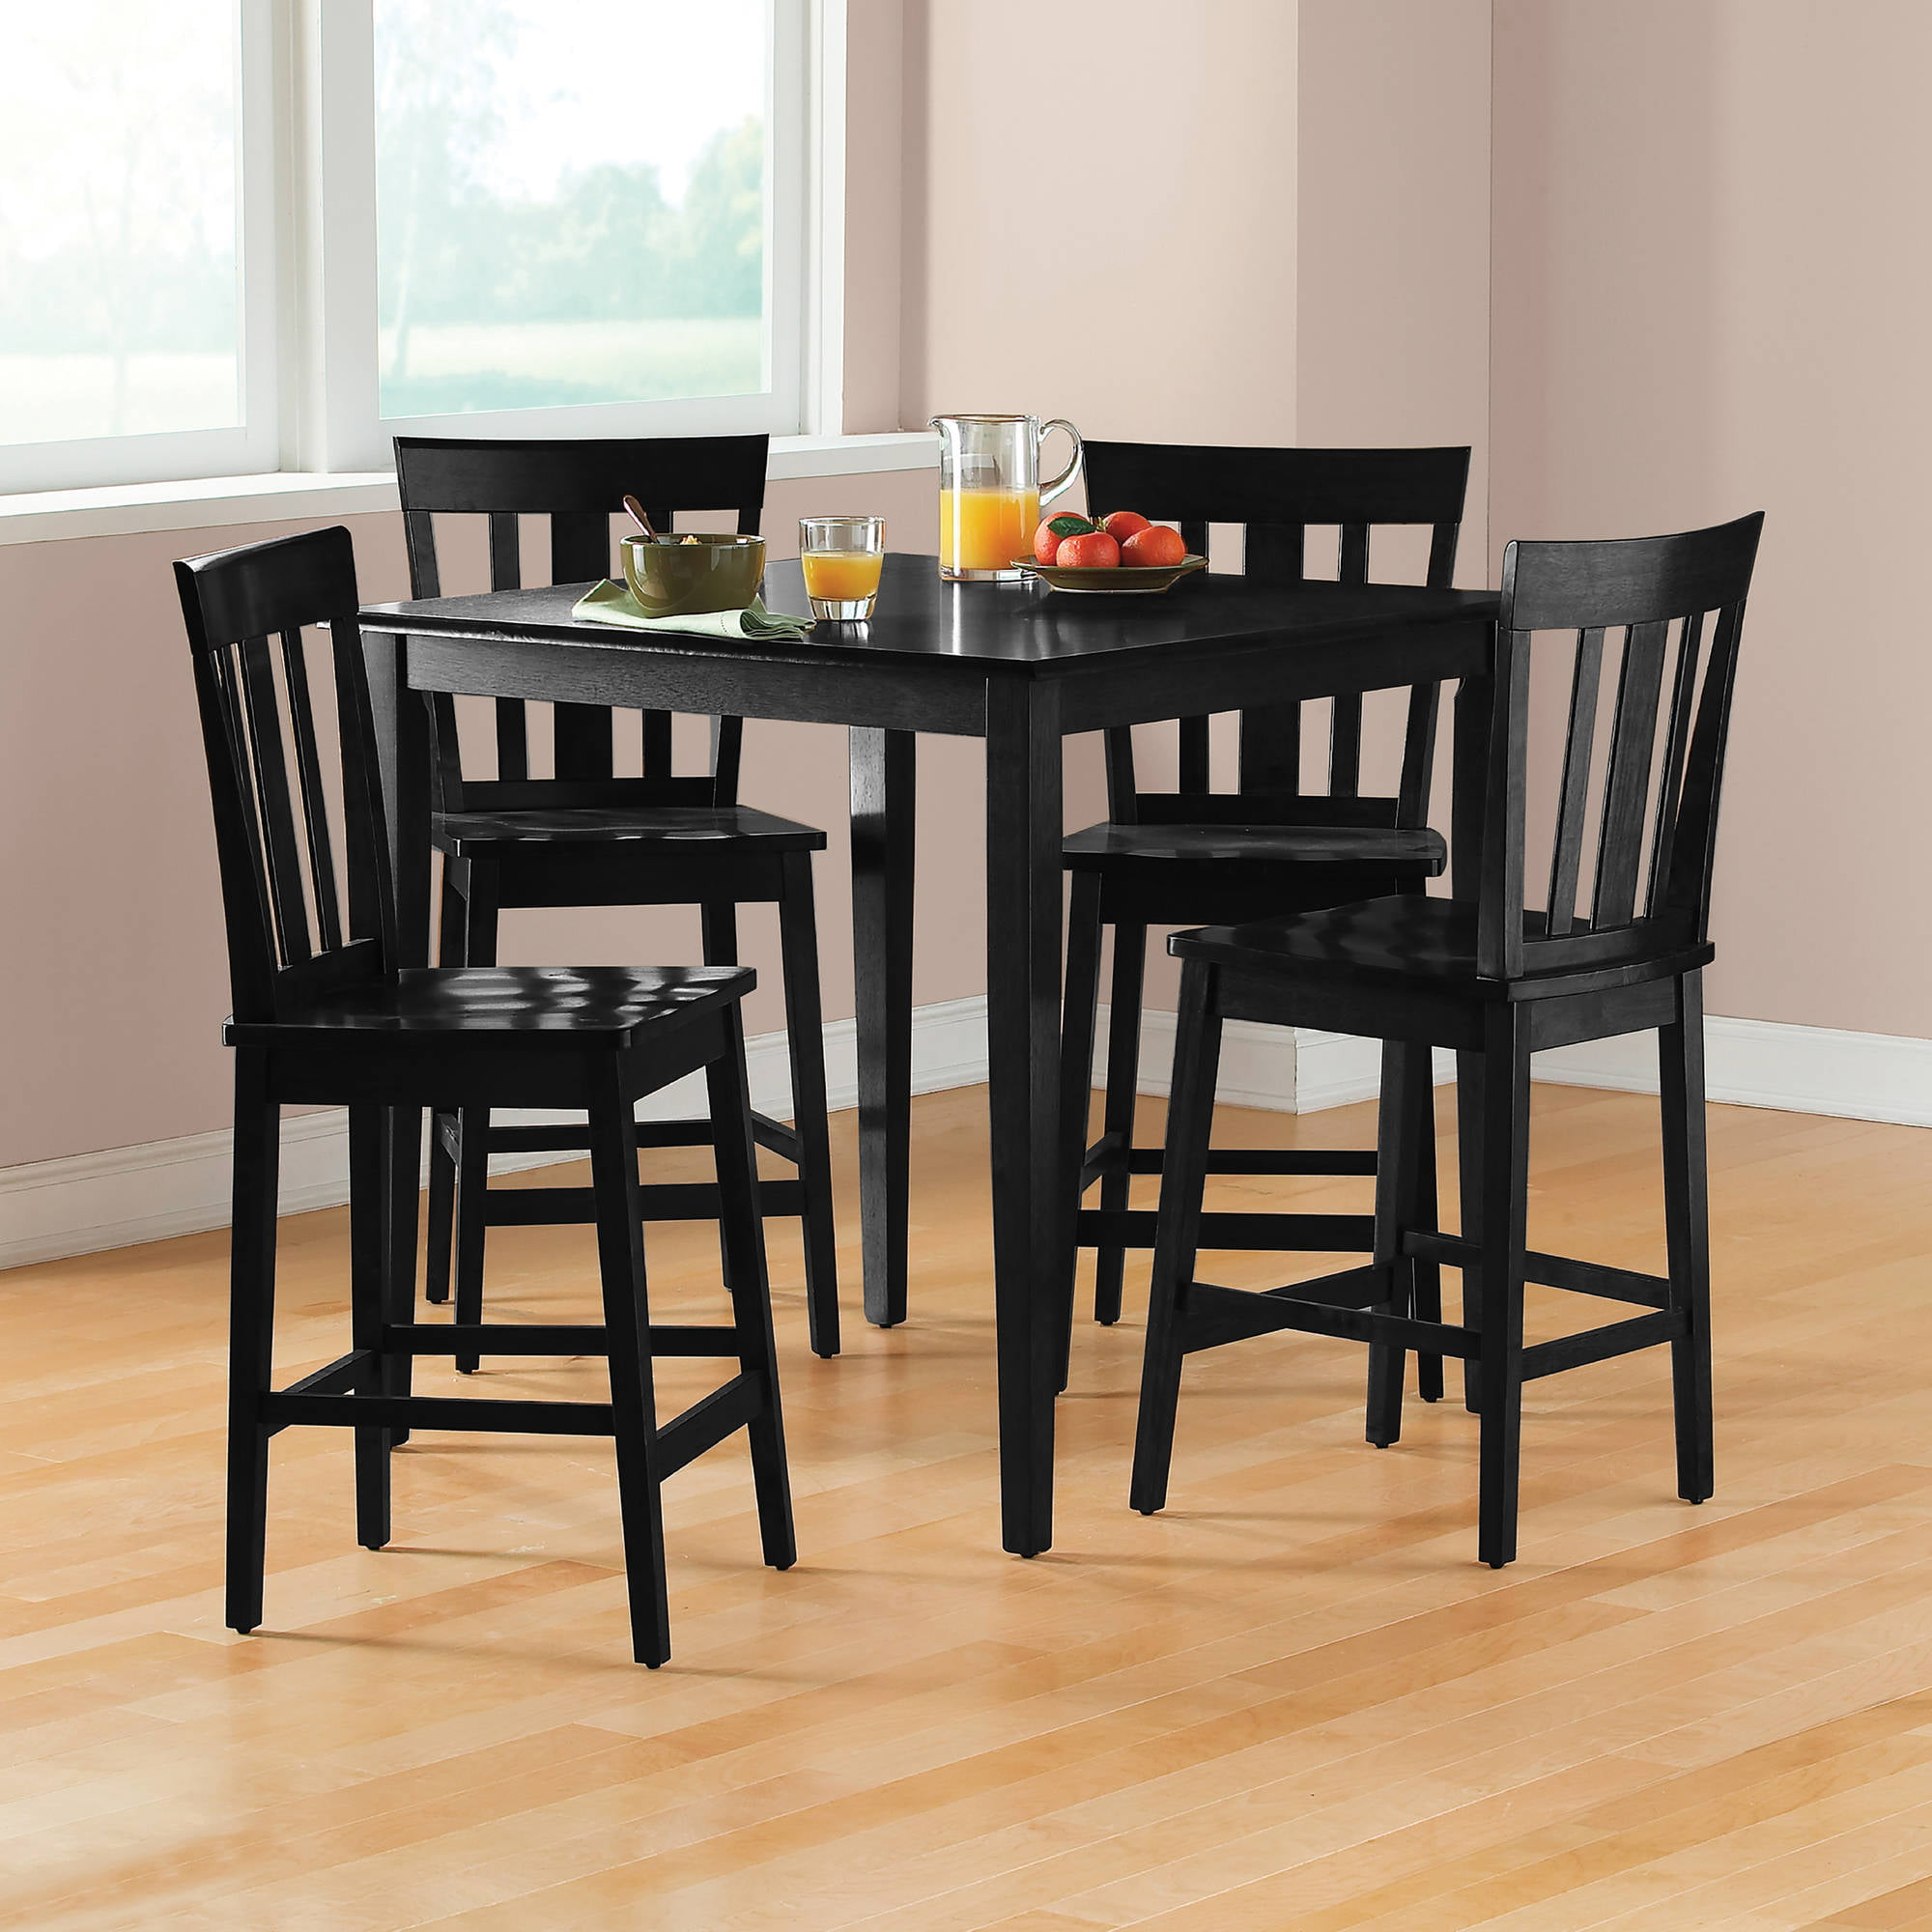 Mainstays 5 Piece Counter Height Dining Set Cherry Walmart